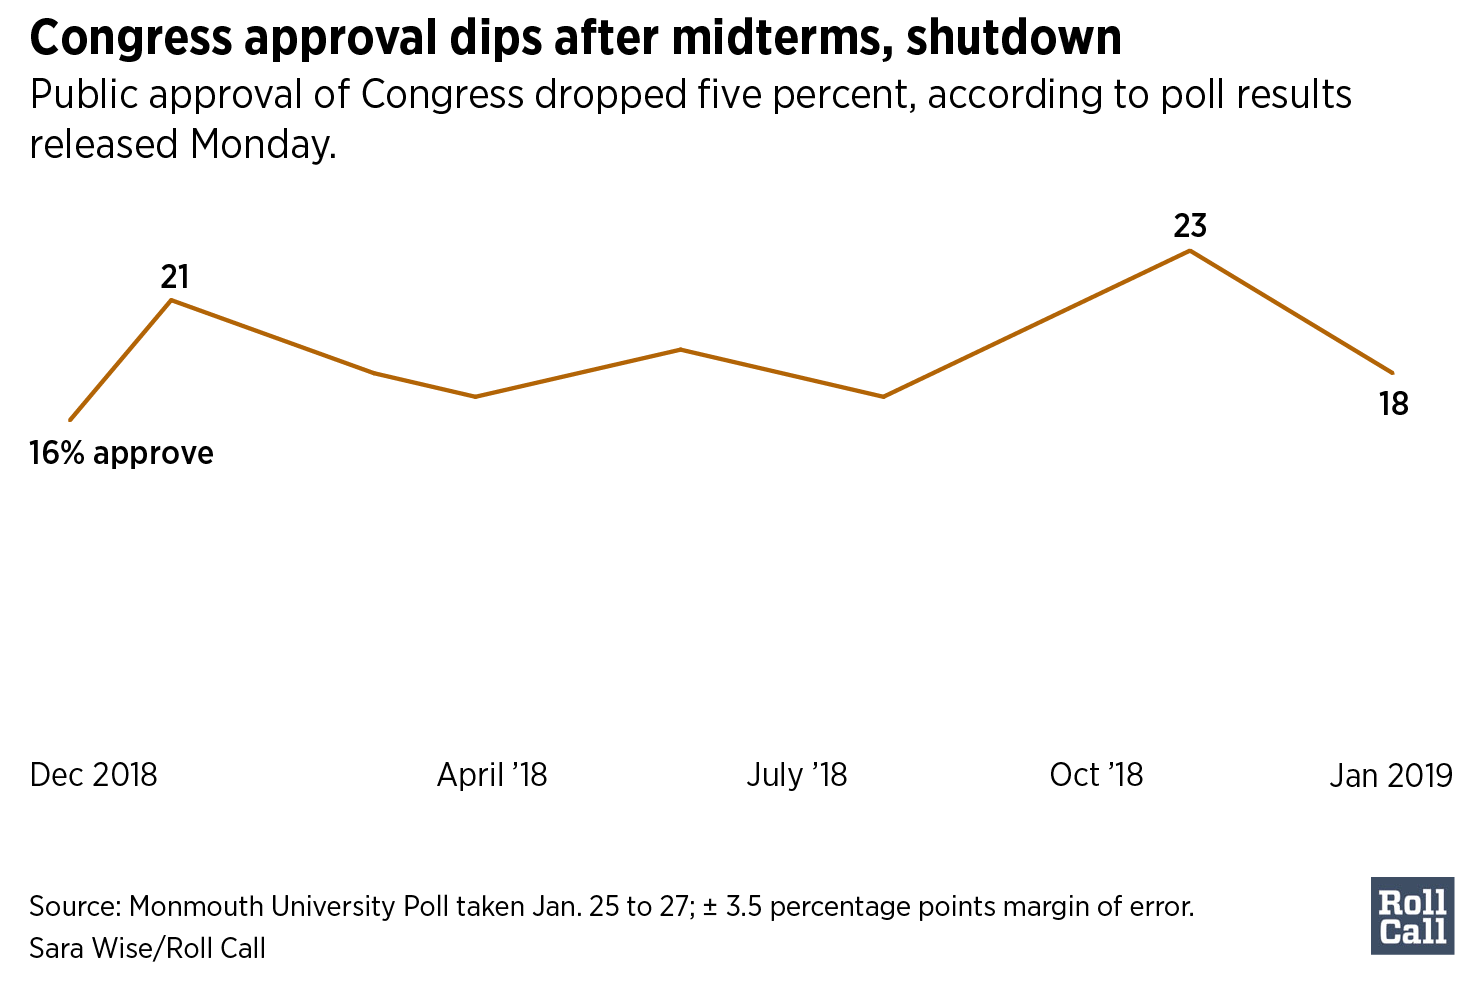 Congress approval dips after midterms, shutdown